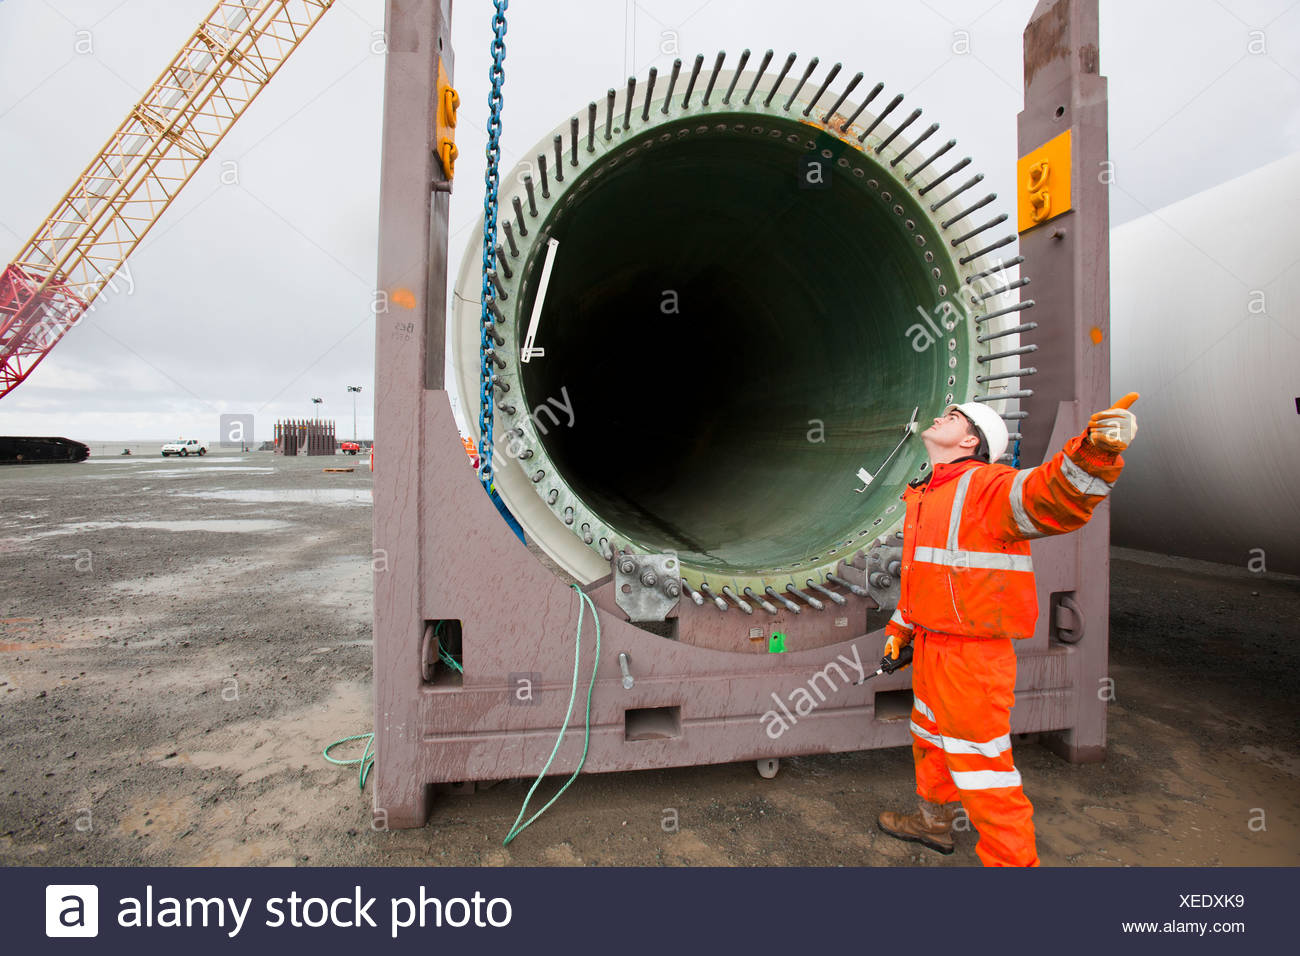 Workers prepare to lift a wind turbine blade onto a jack up barge for the Walney offshore wind farm, Cumbria, UK. - Stock Image